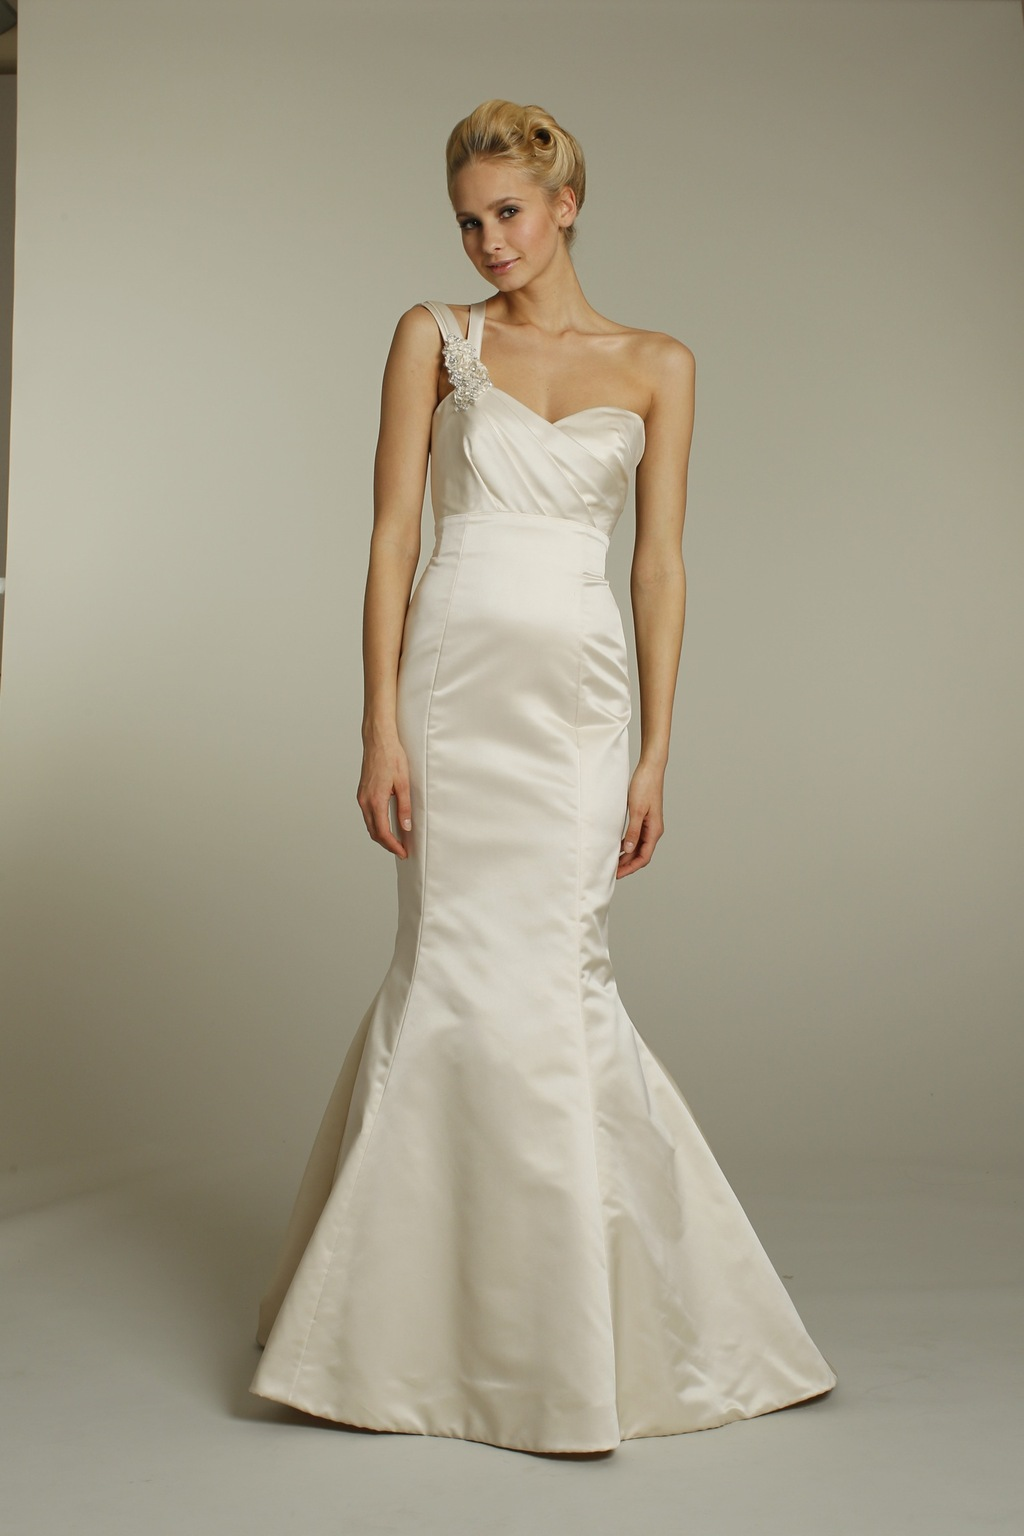 9159-alvina-valenta-wedding-dress-2011-bridal-gowns-champagne-satin-mermaid-one-shoulder-front.full